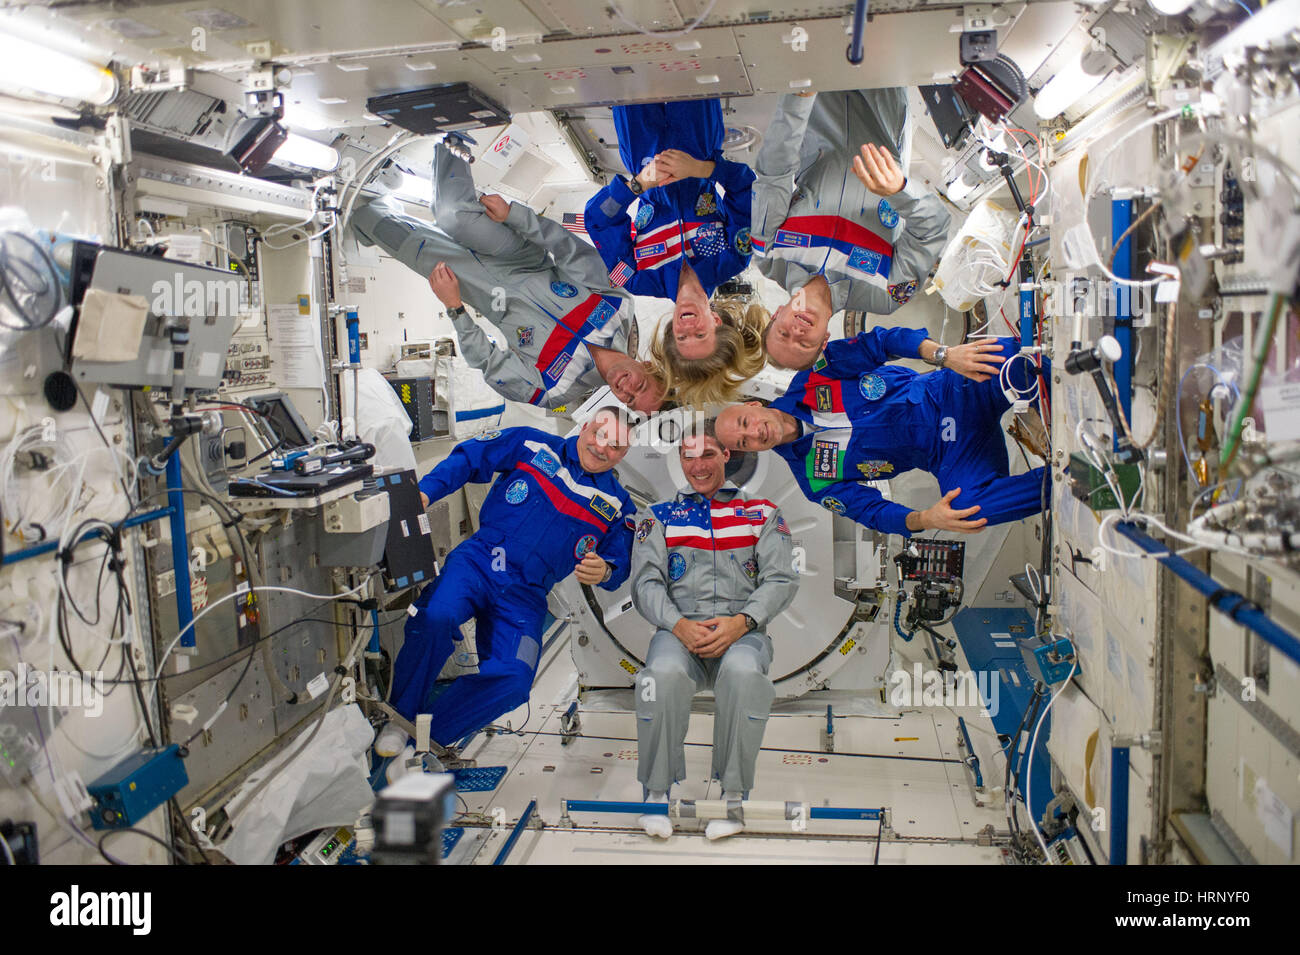 ISS Expedition 37 Crew Portrait - Stock Image